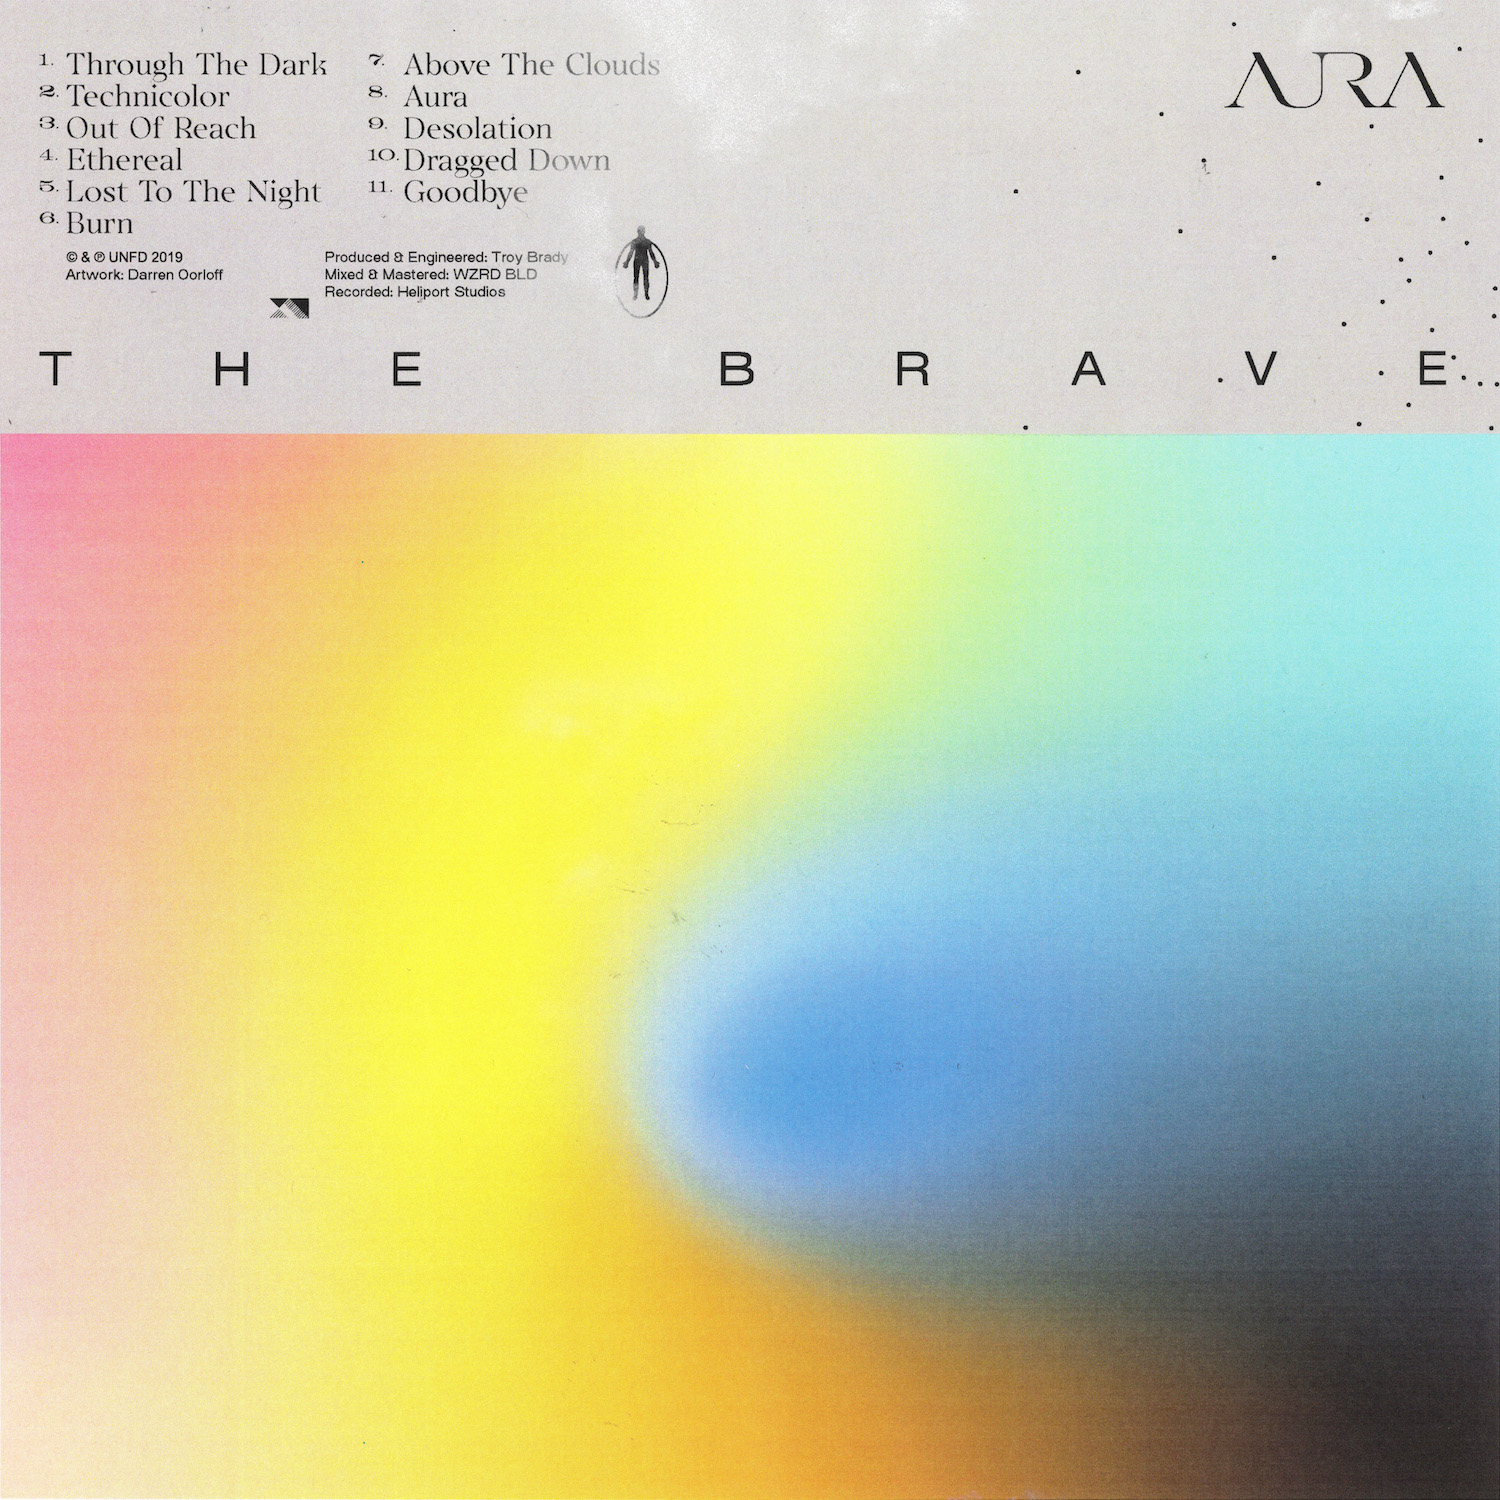 The Brave Aura artwork